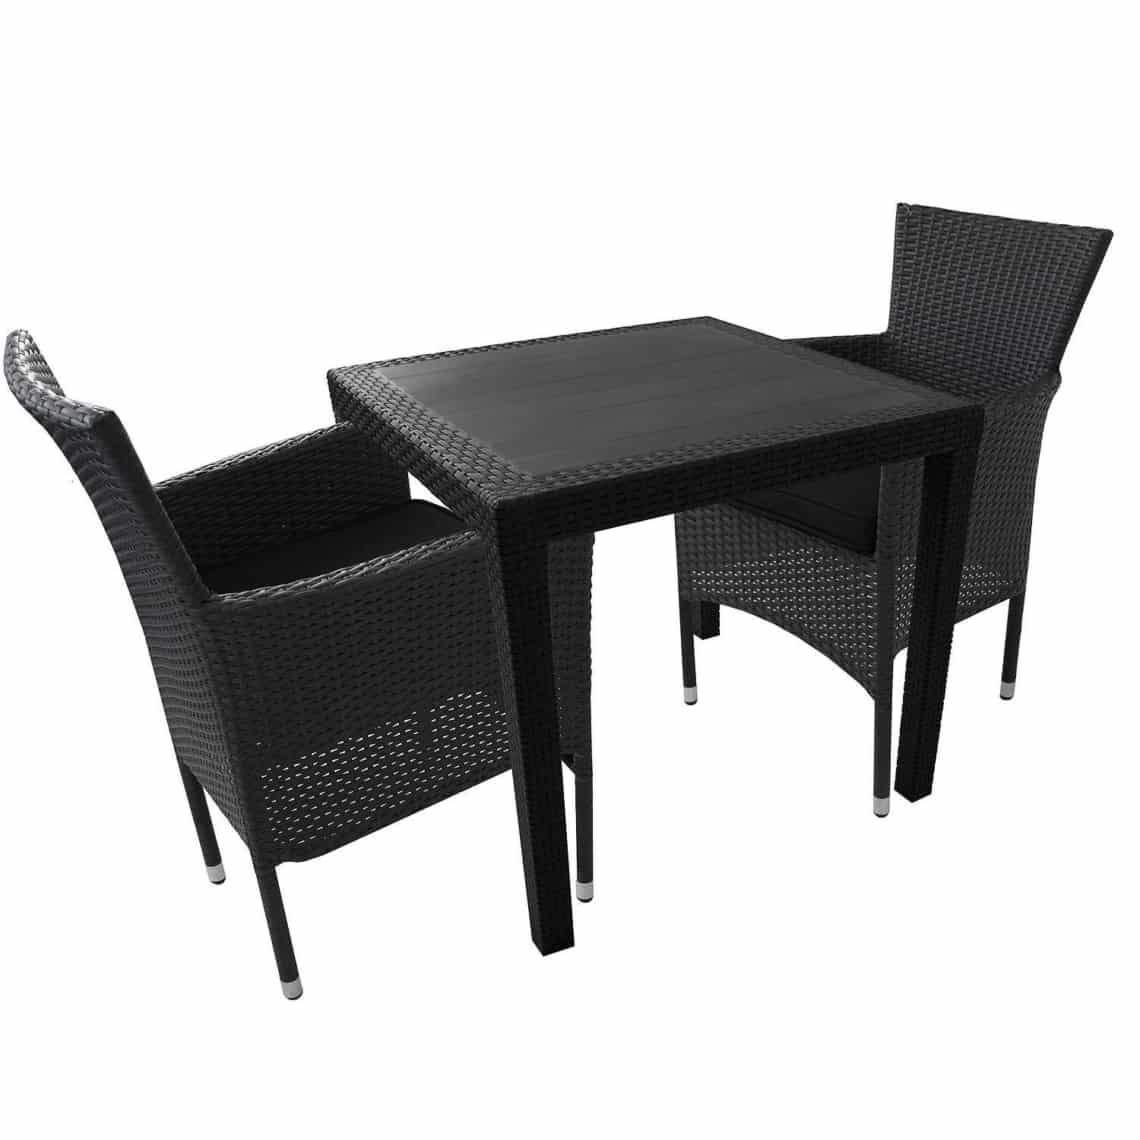 balkonm bel polyrattan set gartenmoebel kaufen. Black Bedroom Furniture Sets. Home Design Ideas